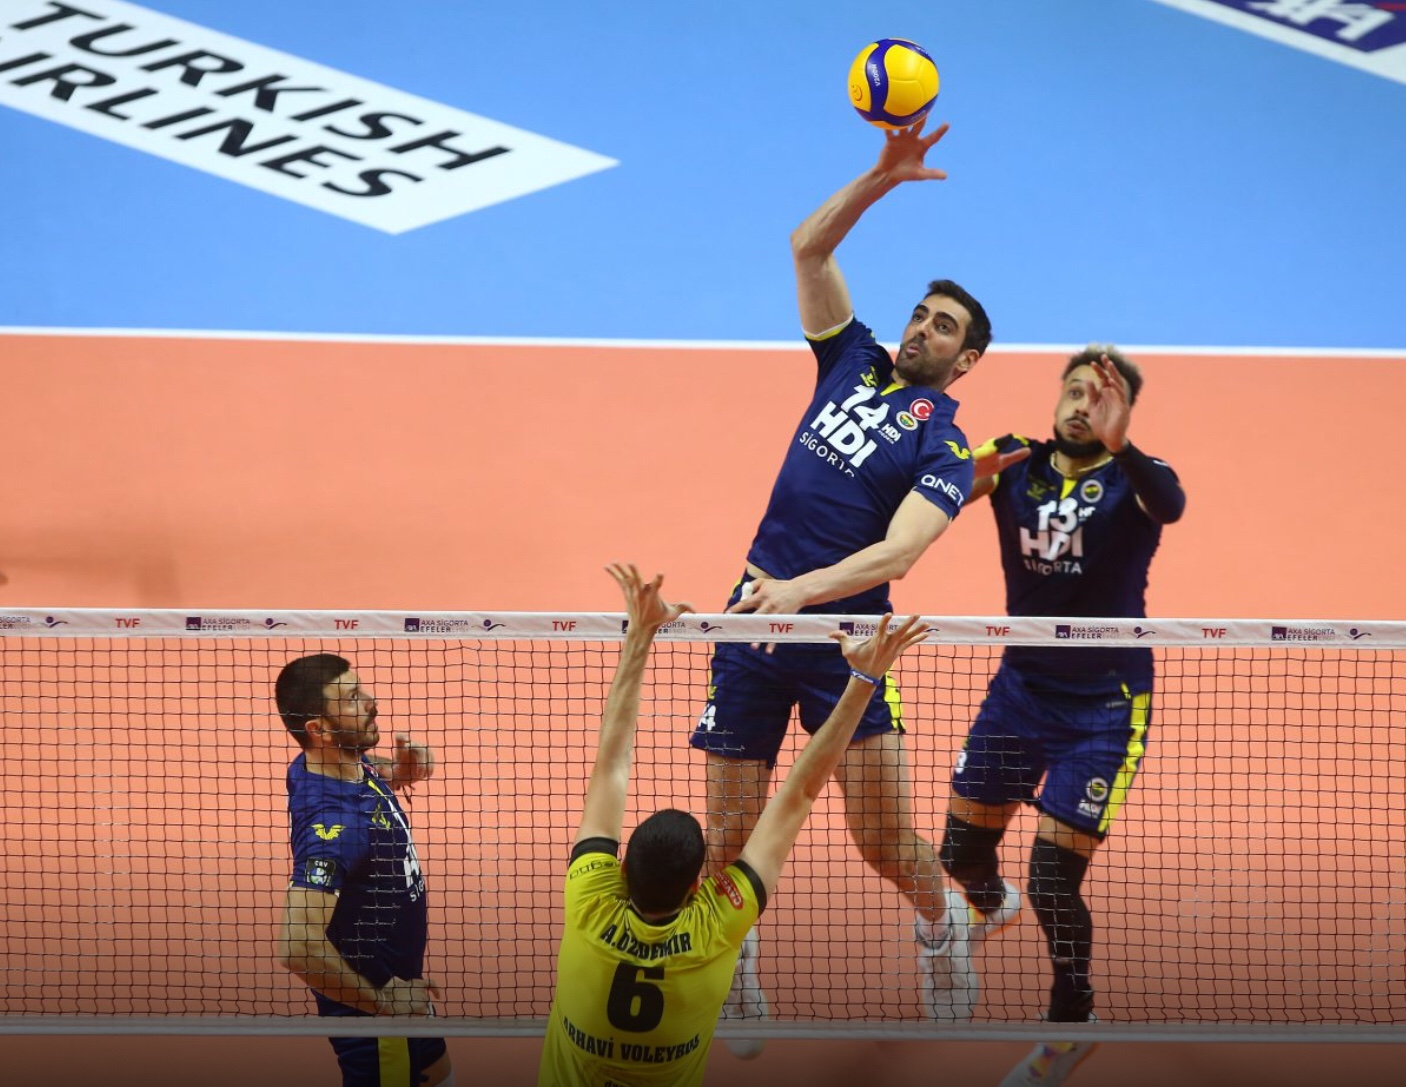 Turkey: Arkas sweep Halkbank in a classic, Fenerbahçe recover after surprising defeat in Champions League